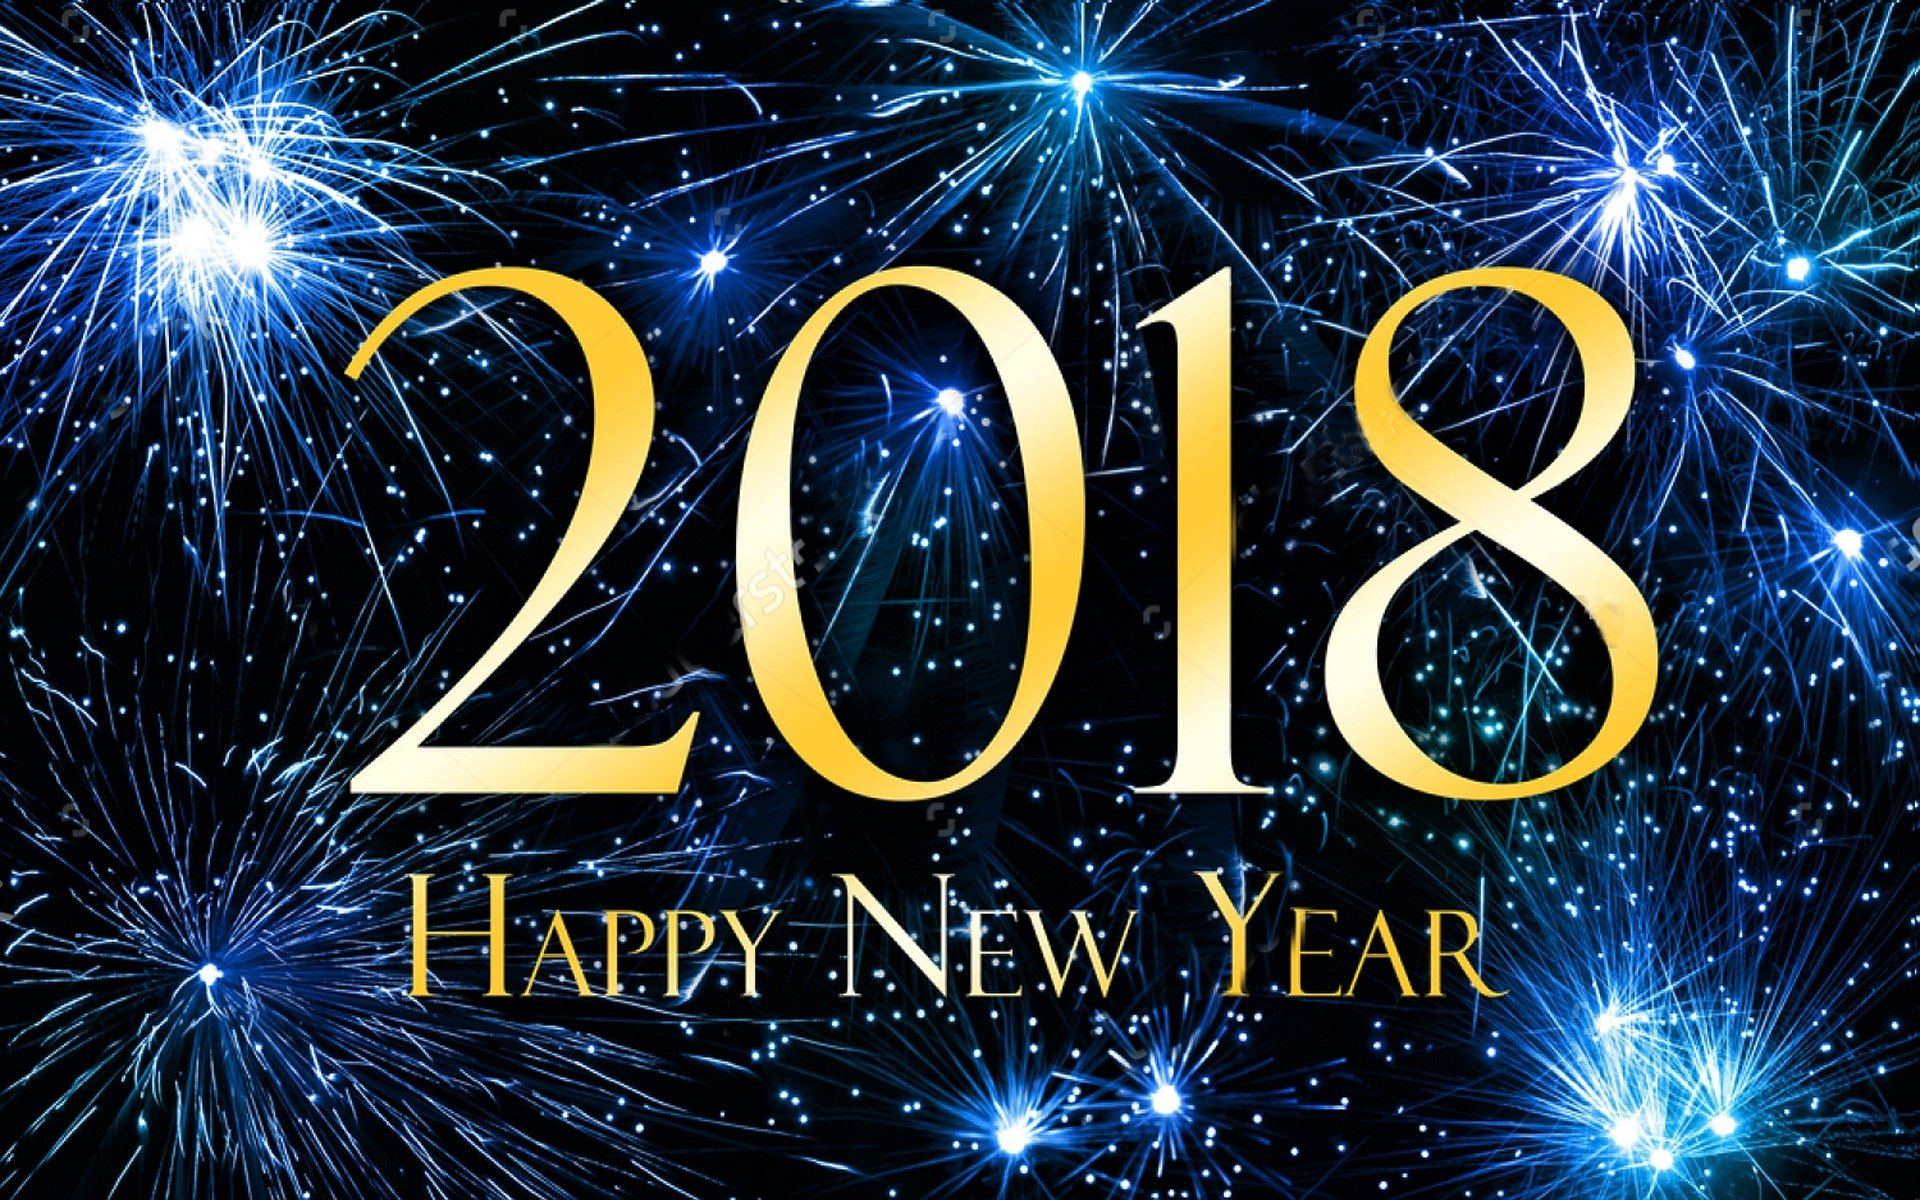 new year 2018 wallpapers id880824